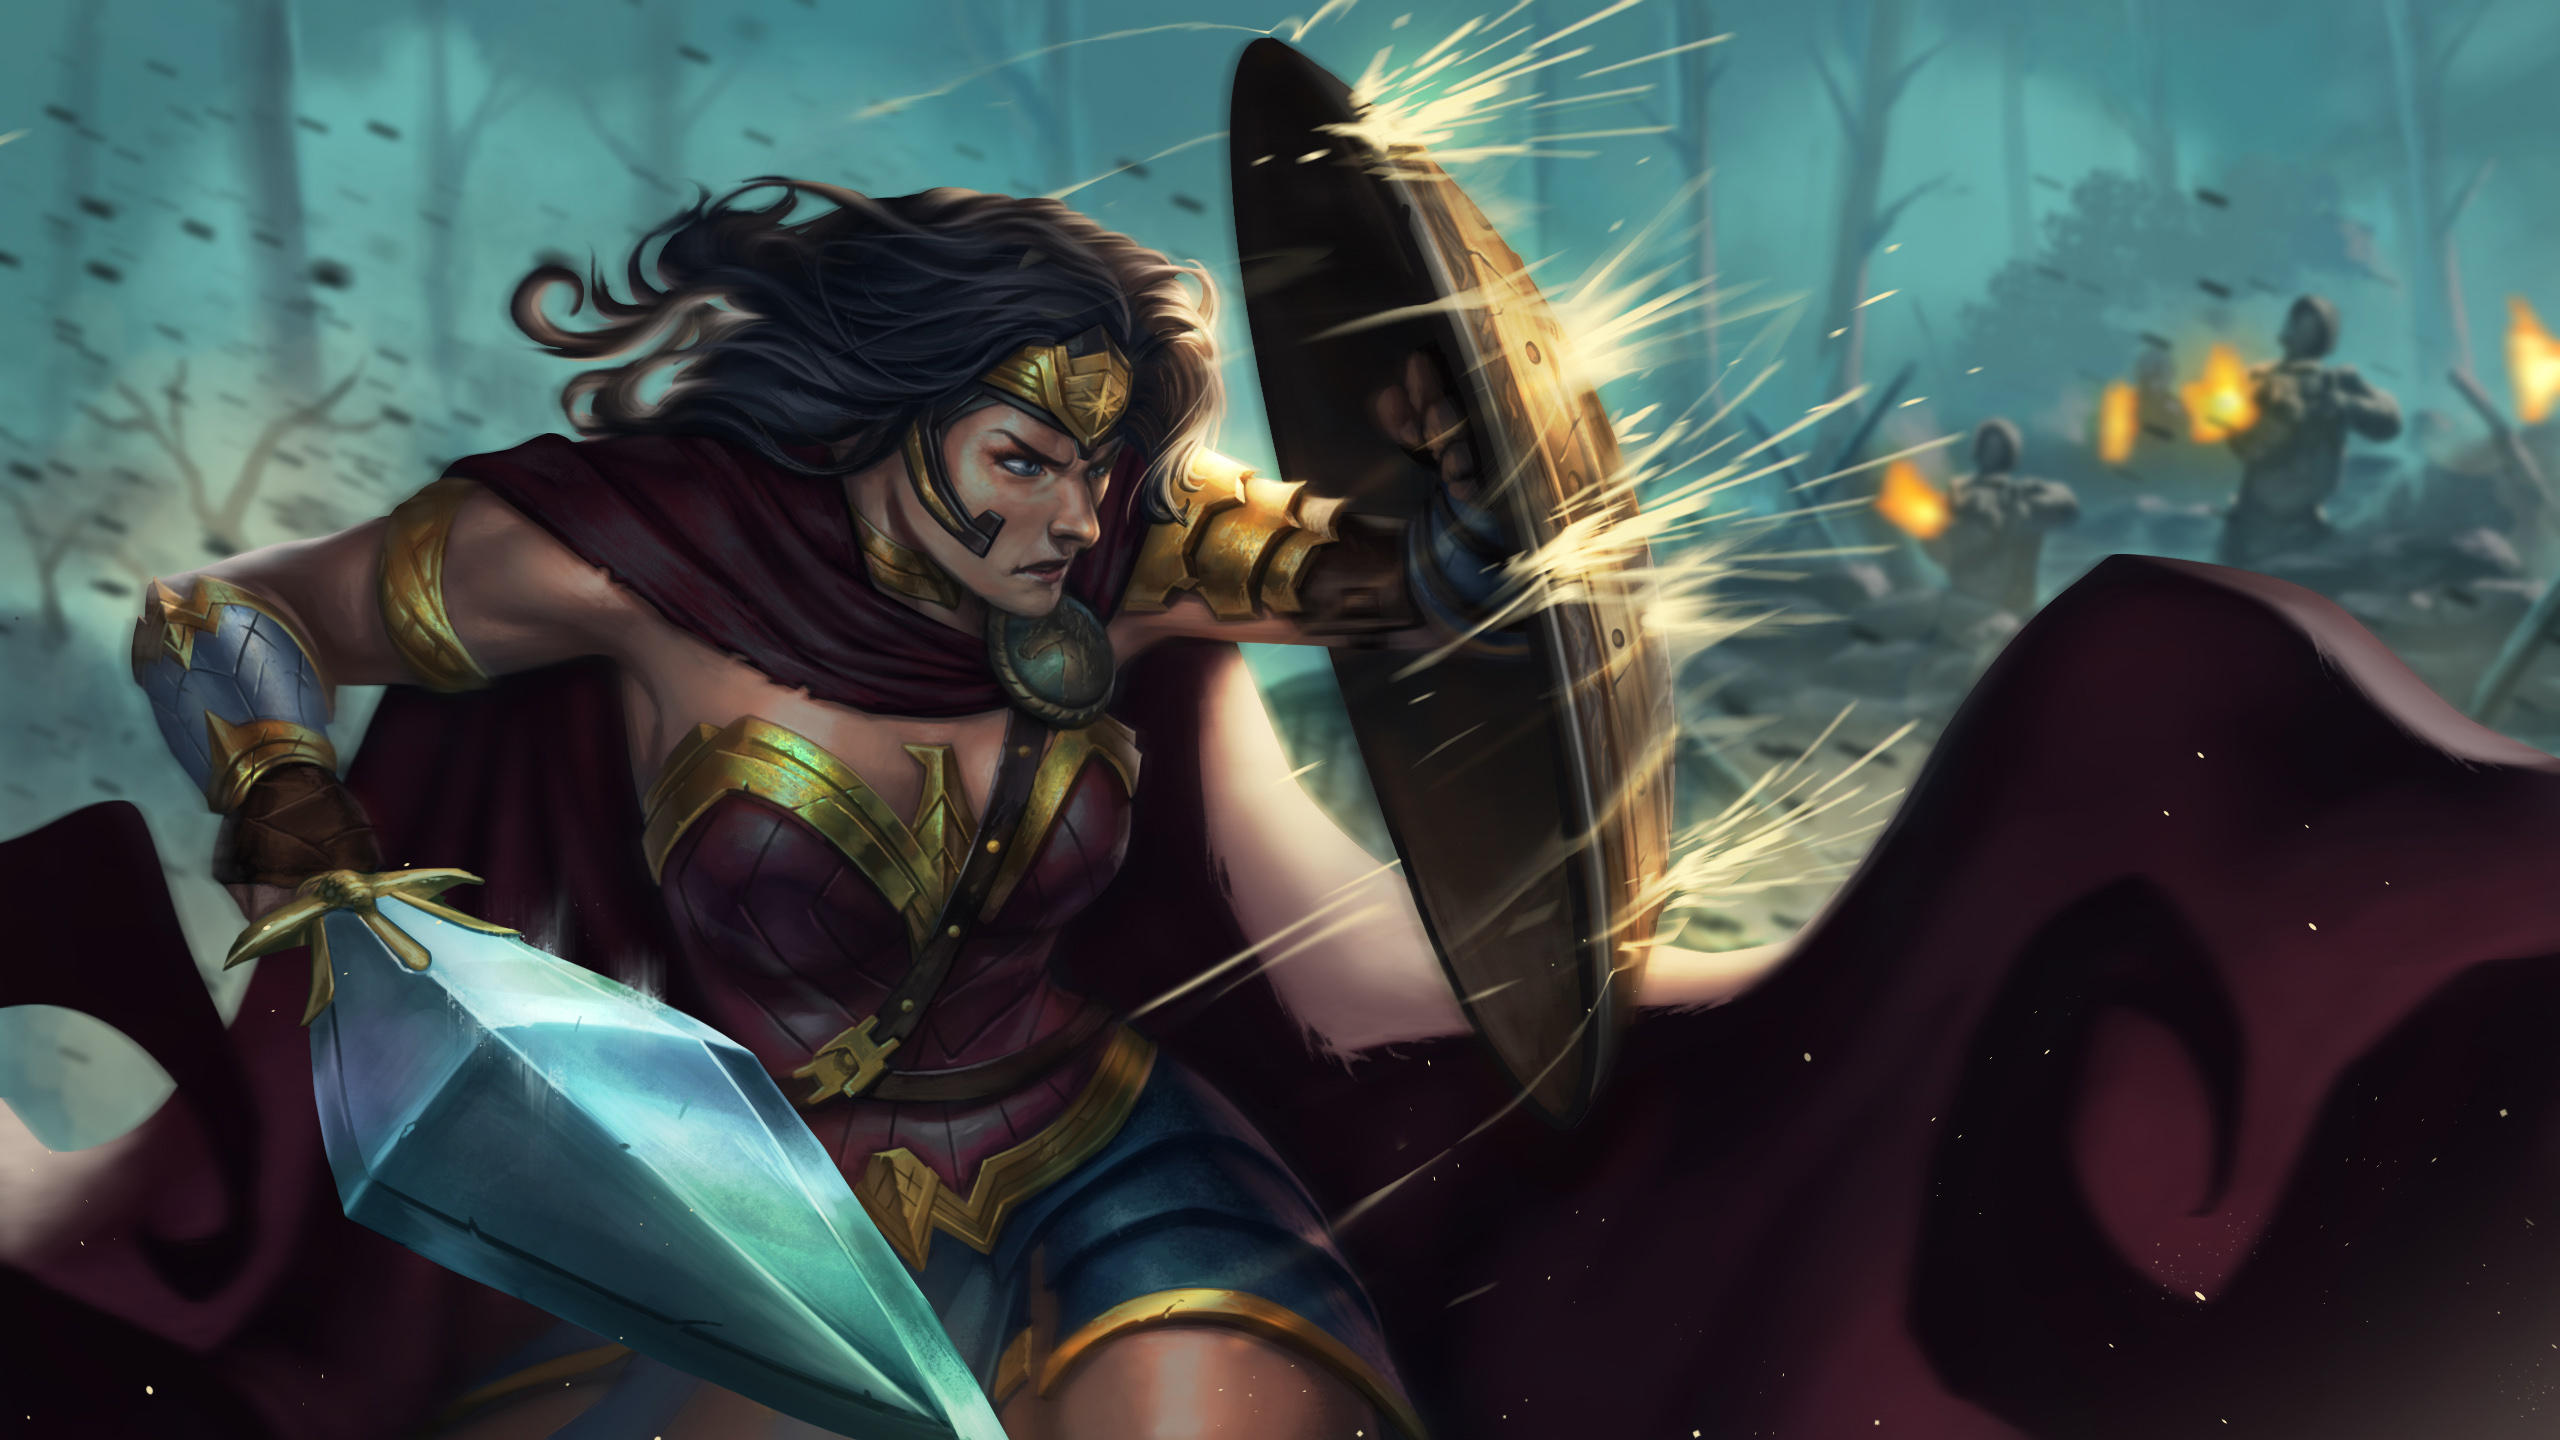 Wallpaper Wonder Woman defending herself with shield